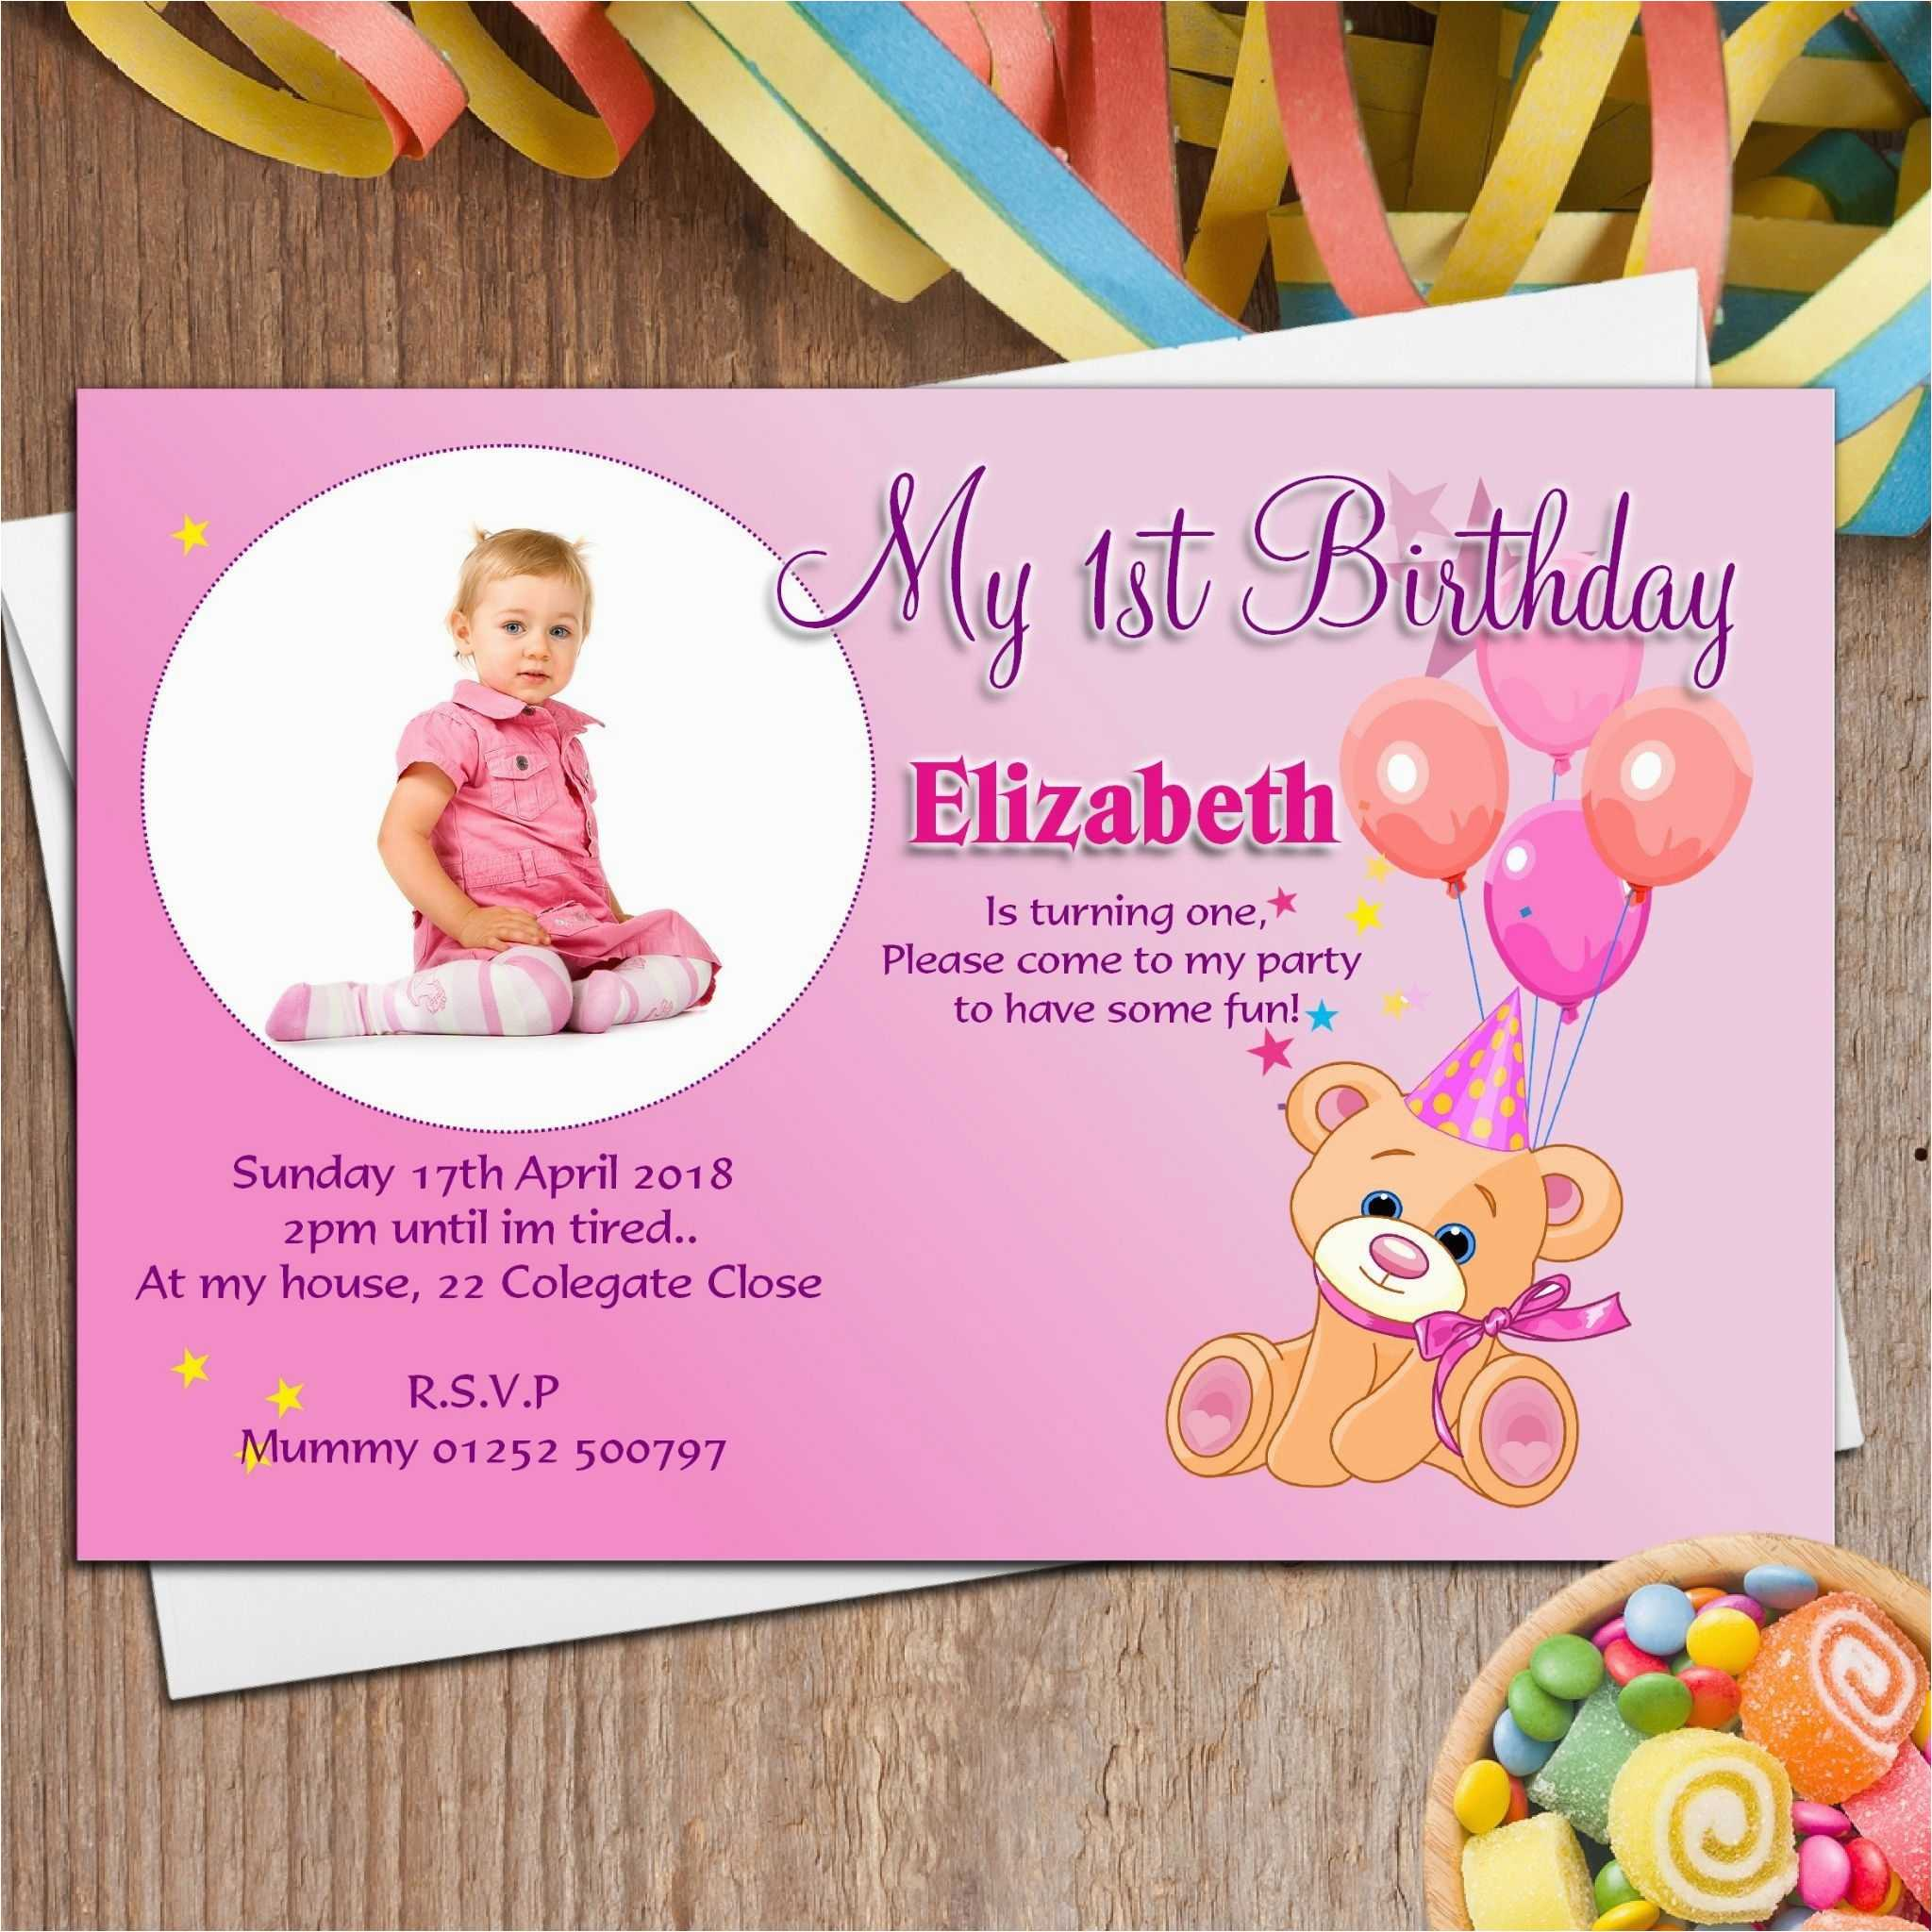 First Birthday Invitations Templates - Zohre For First Birthday Invitation Card Template